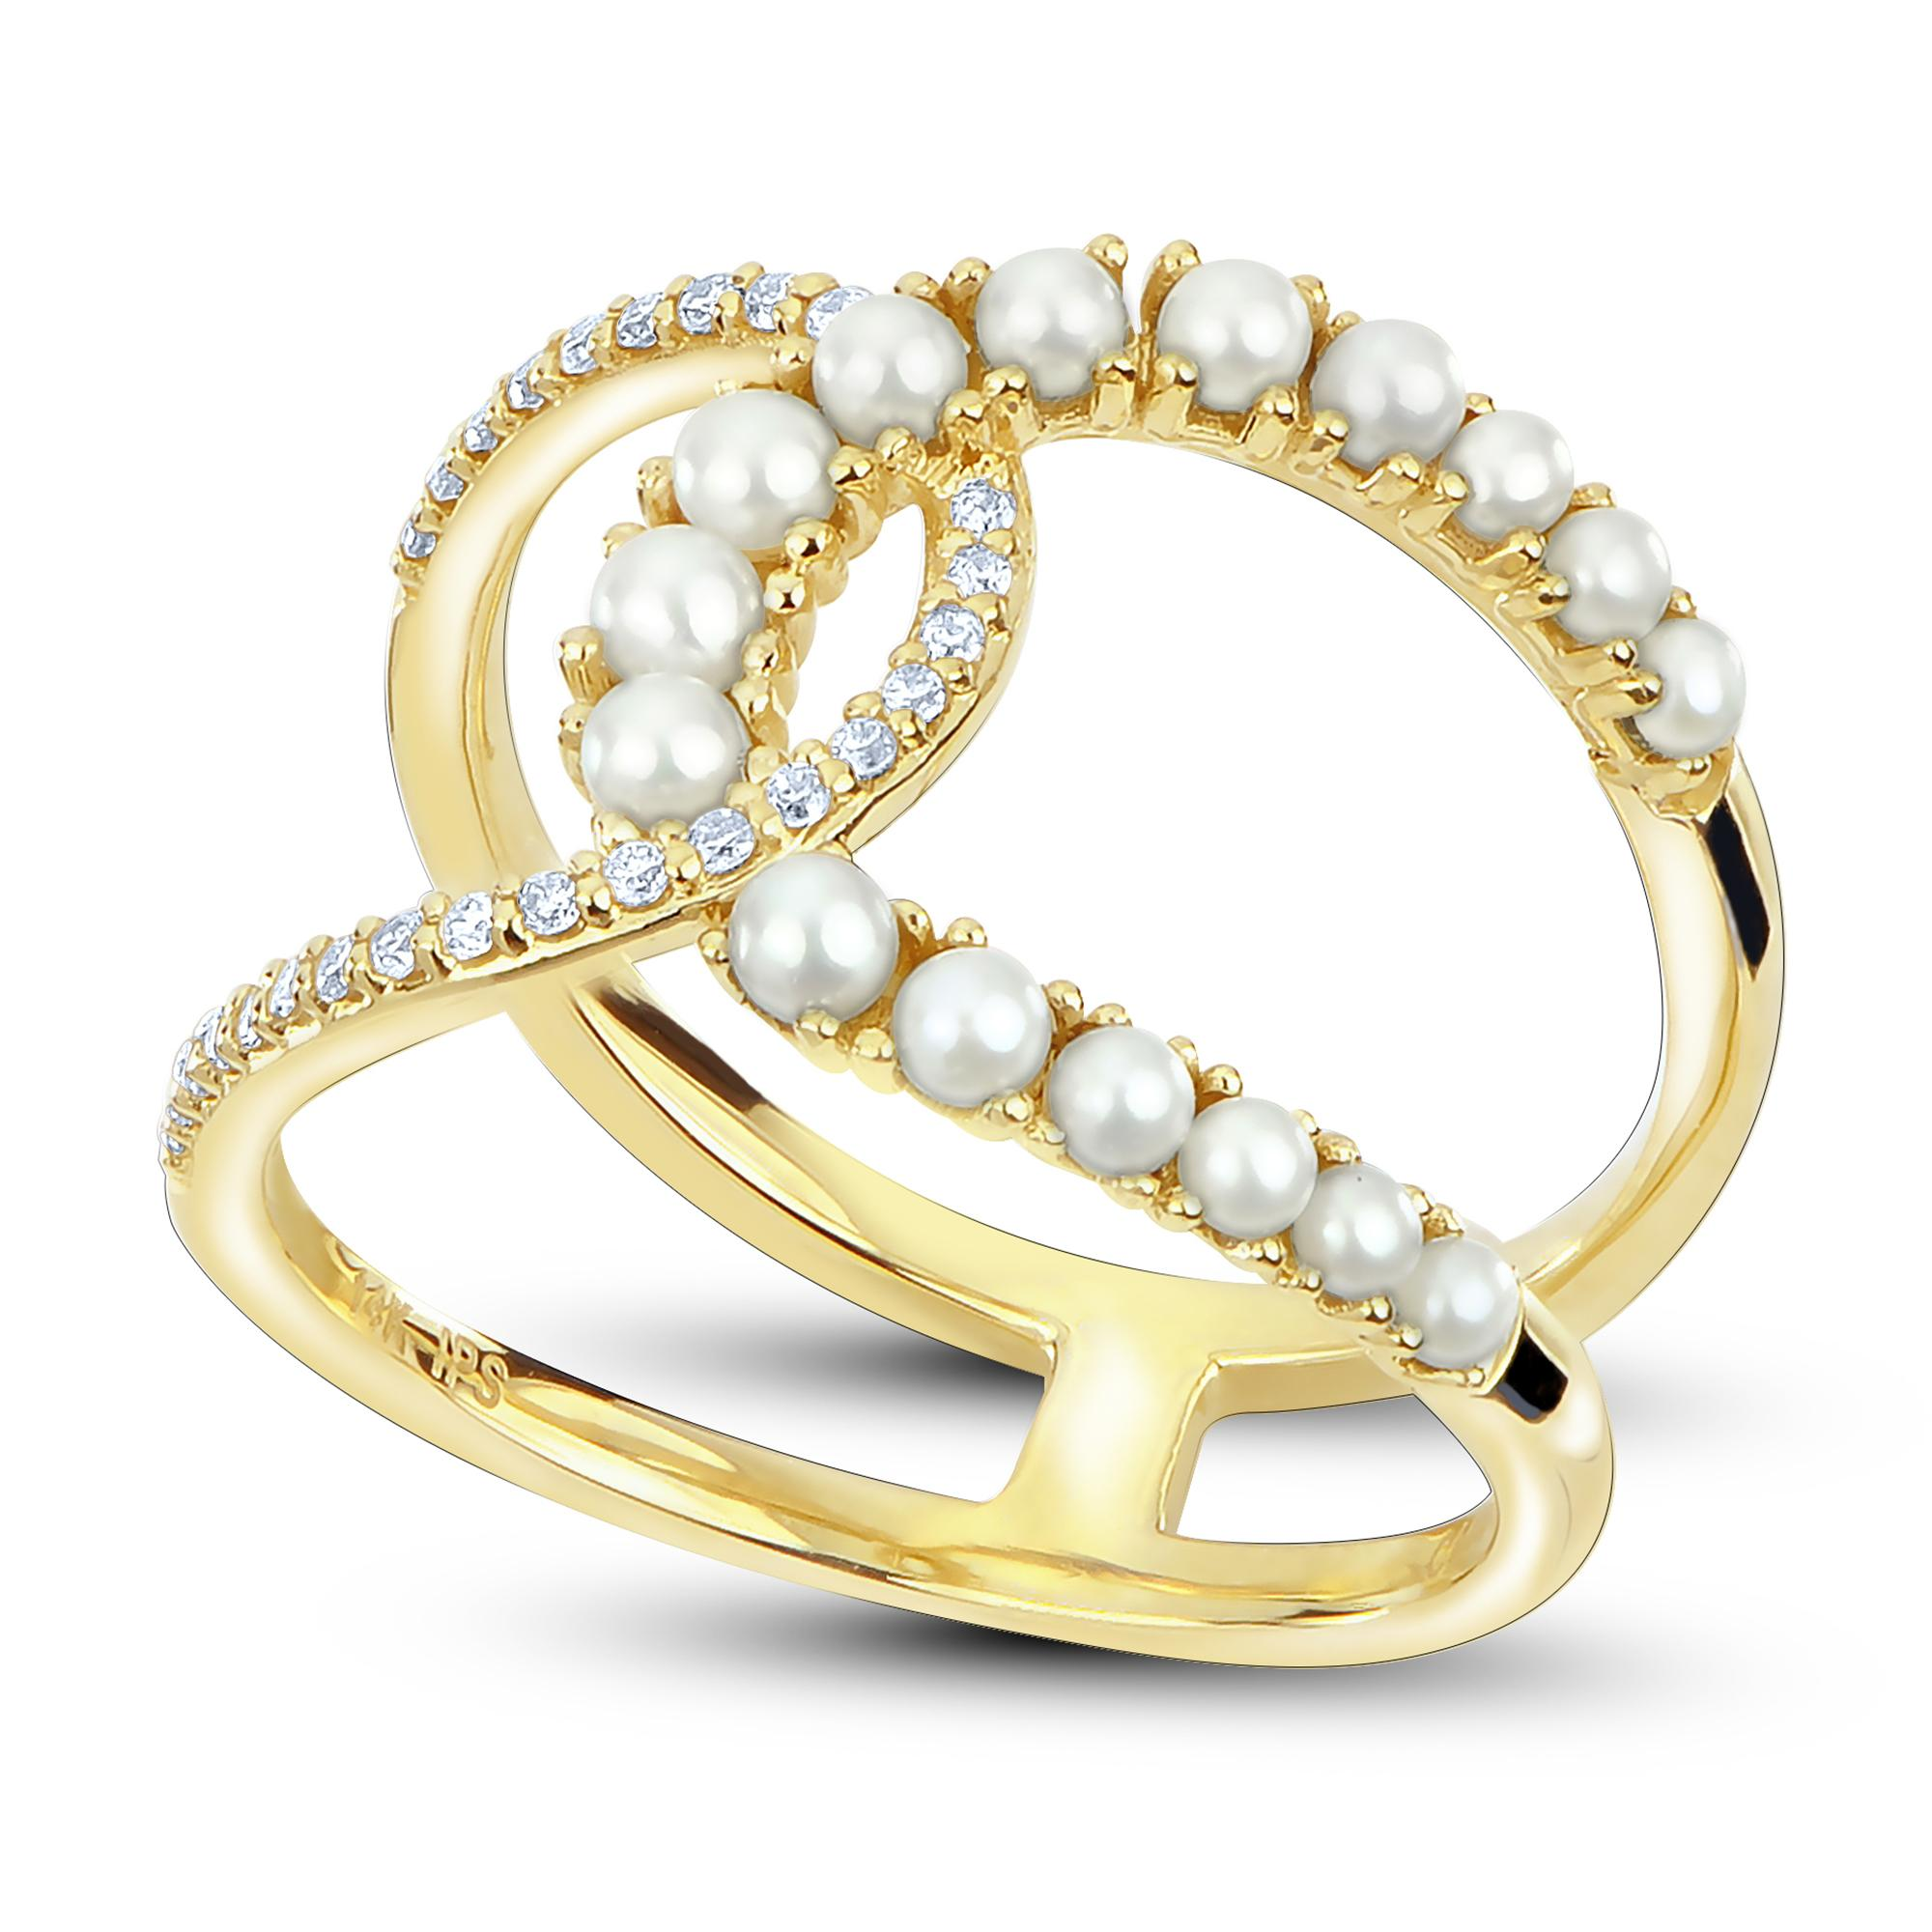 9fcb2ac90 14K Yellow Gold Freshwater Pearl Ring 917121/FW | Pearl Rings from D ...